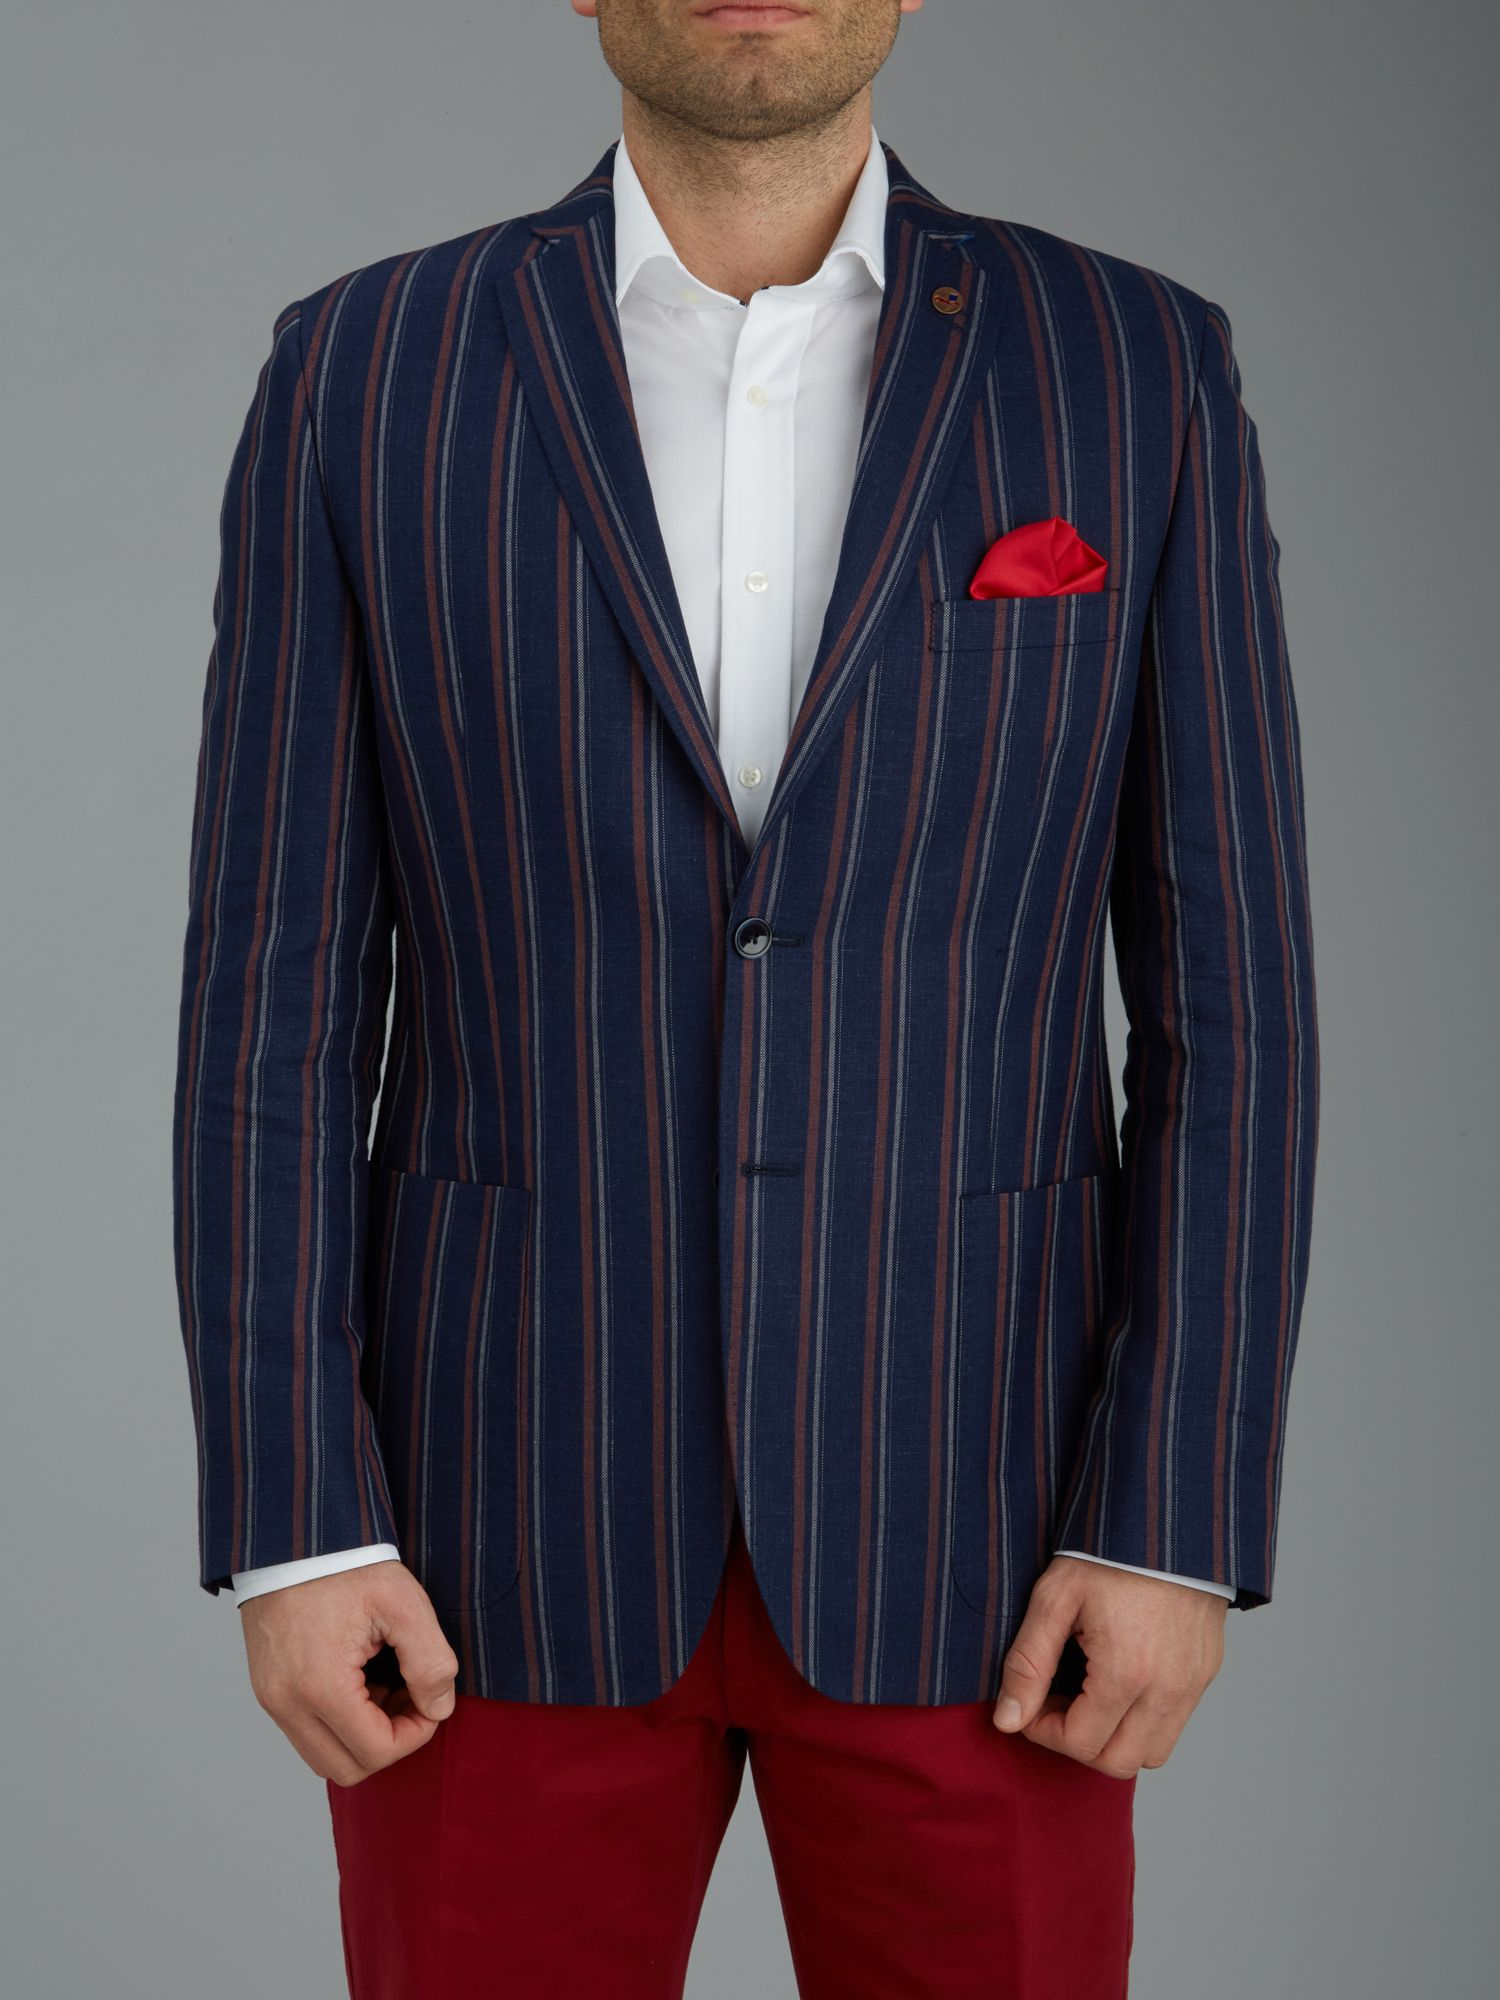 Boating stripe single breasted jacket